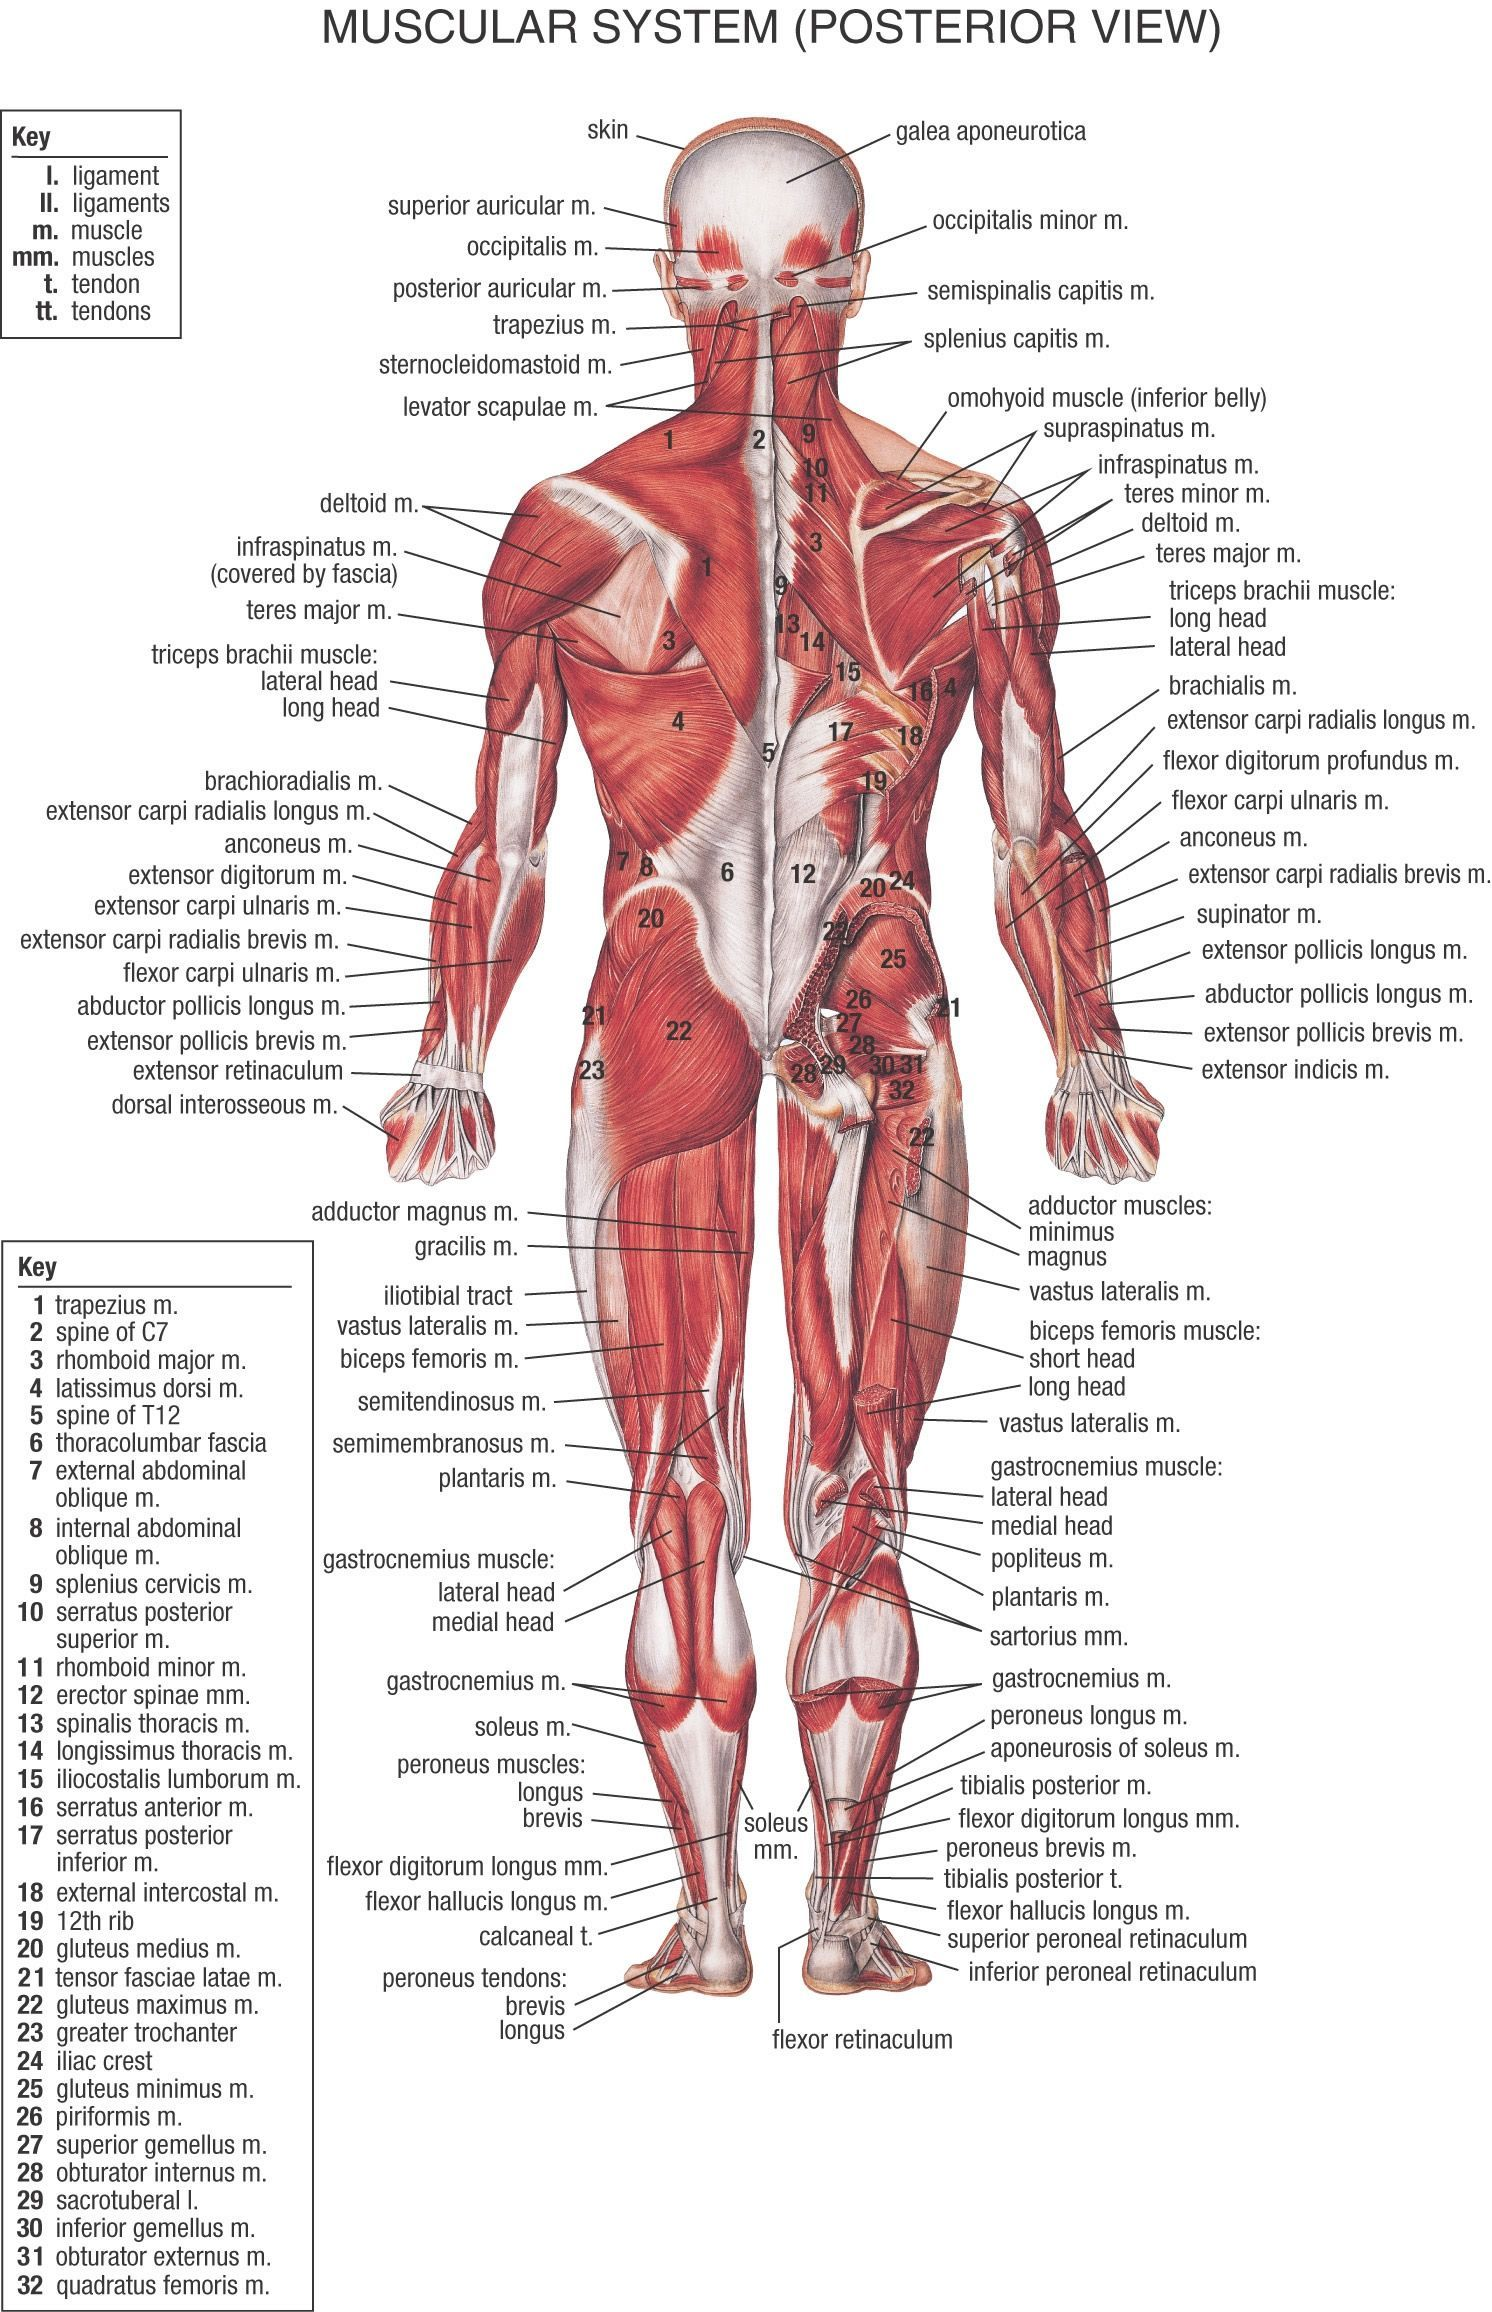 simple human anatomy diagram simple human anatomy diagram human rh pinterest com Simple Layers of Human Skin Simple Human Anatomy Diagrams with Nouns